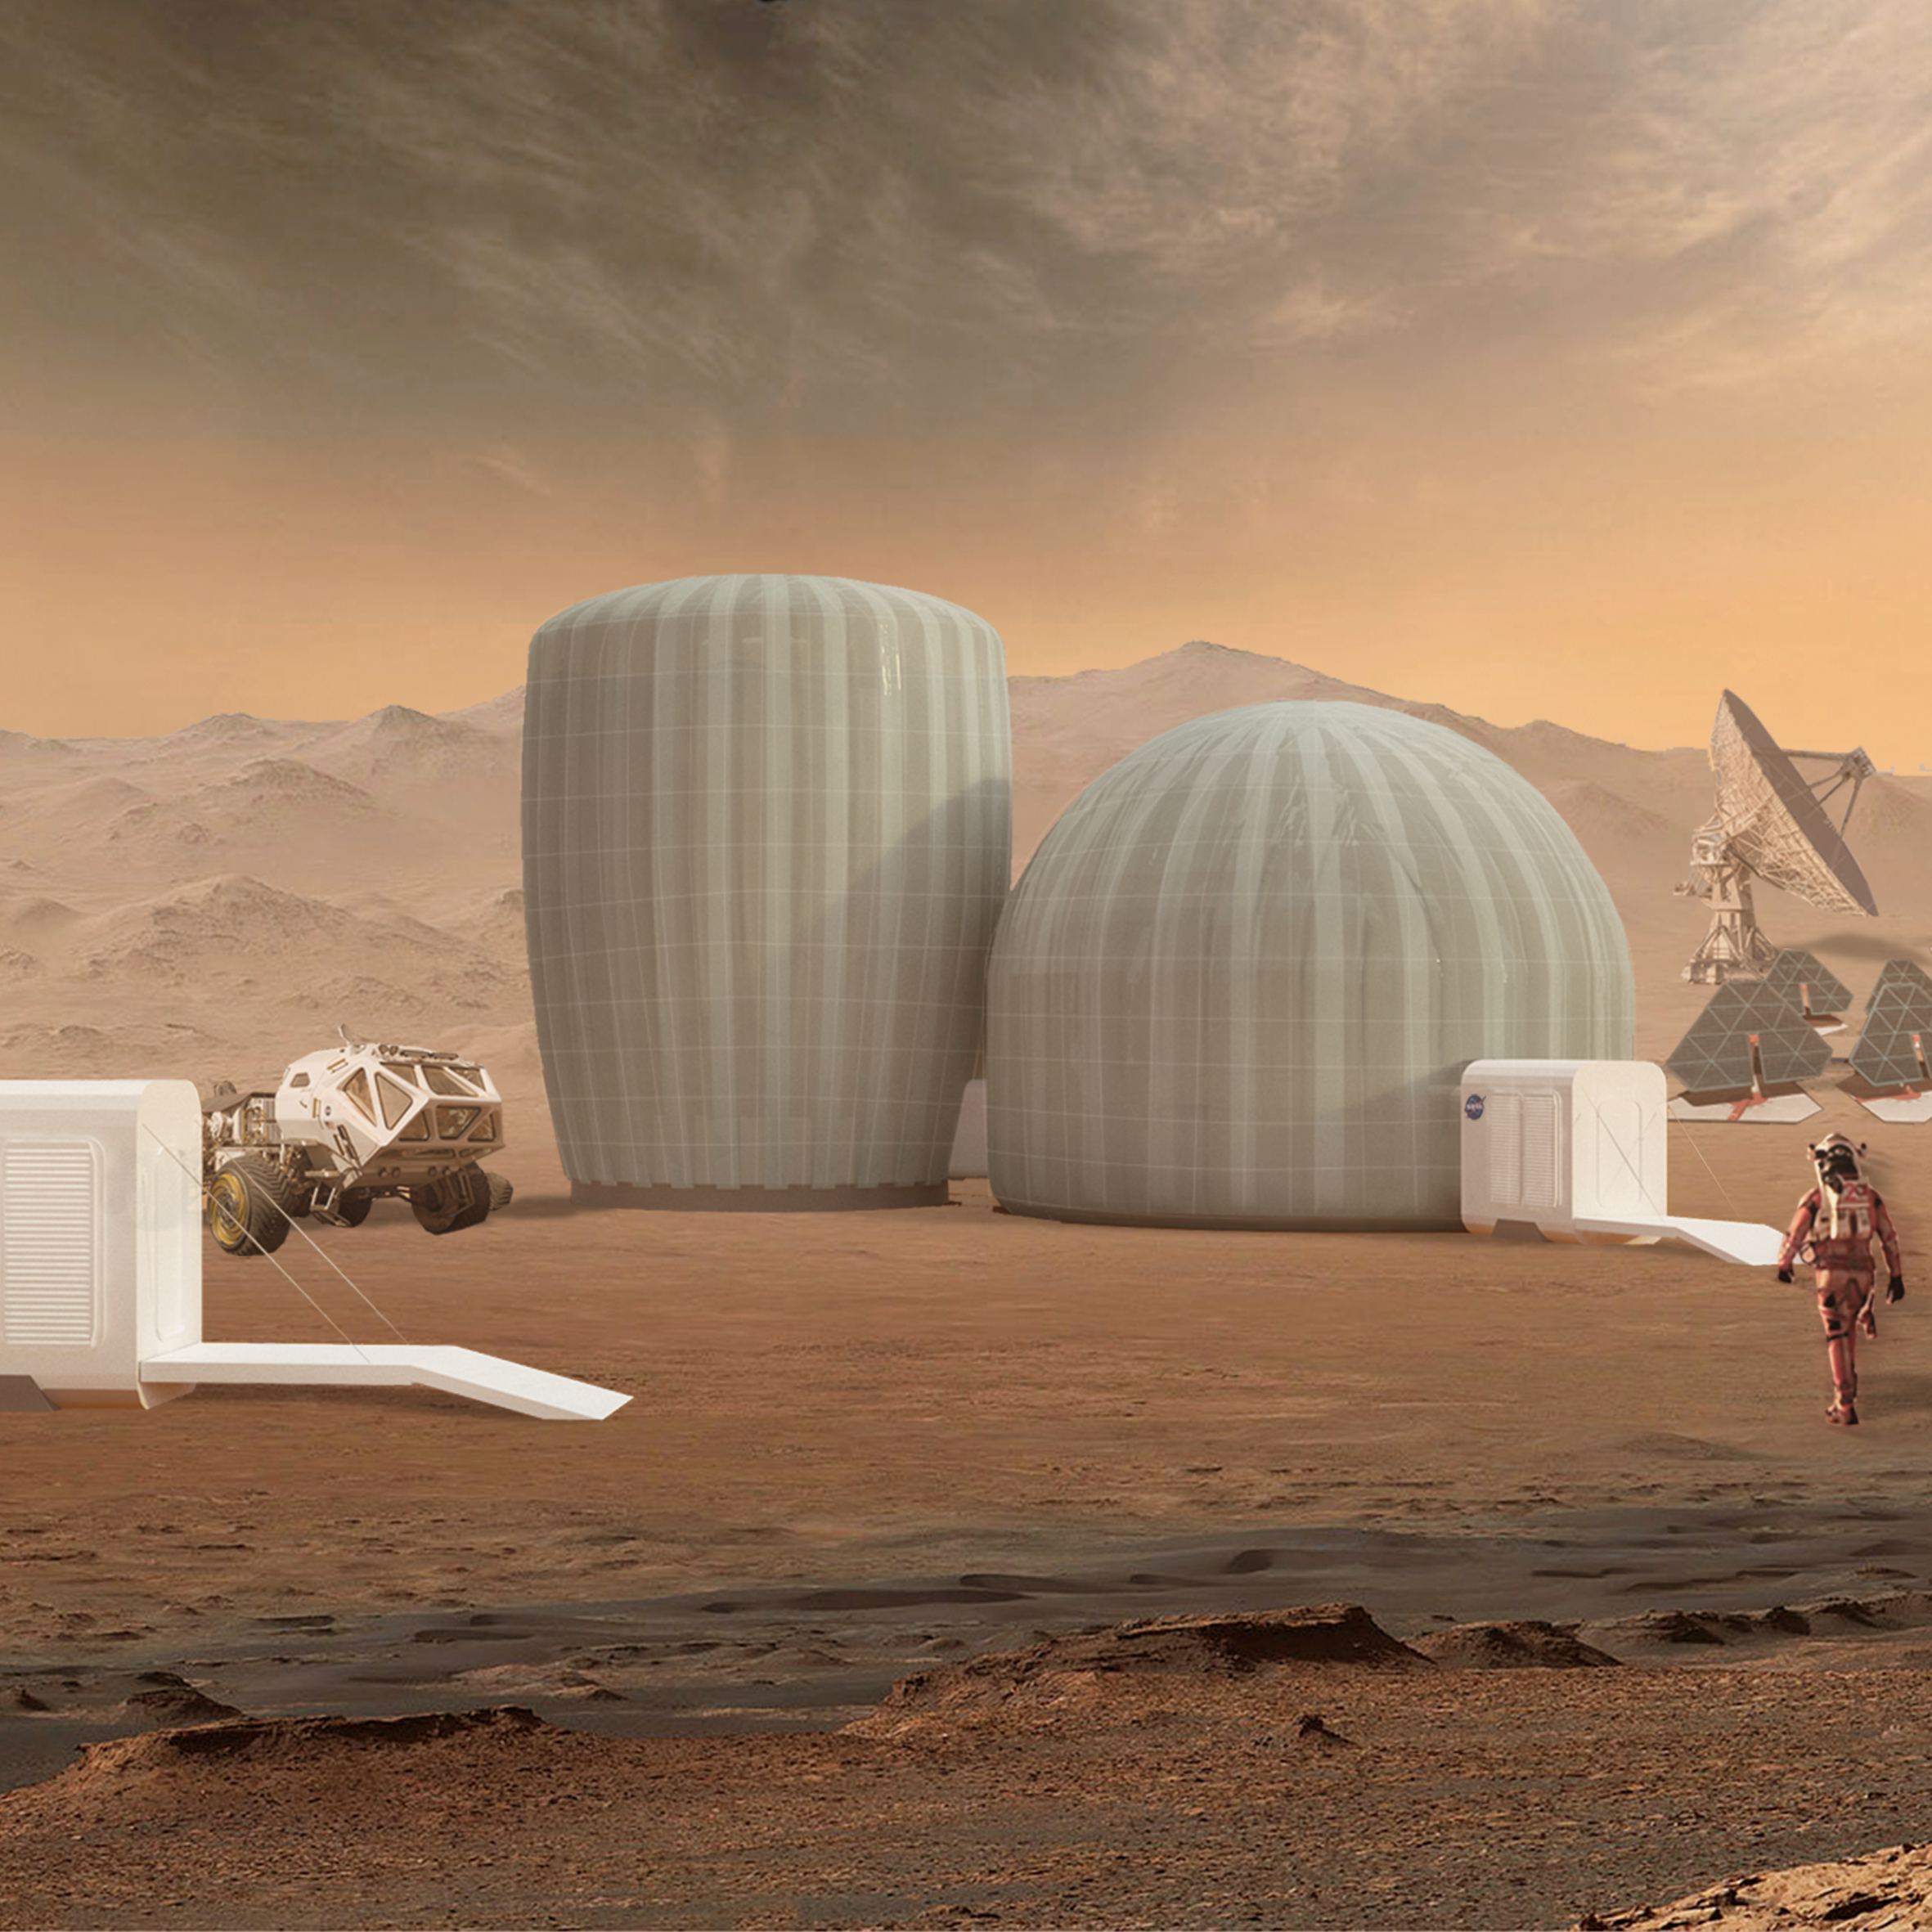 SAEXE: Space Architecture for EXtra-planetary Exploration